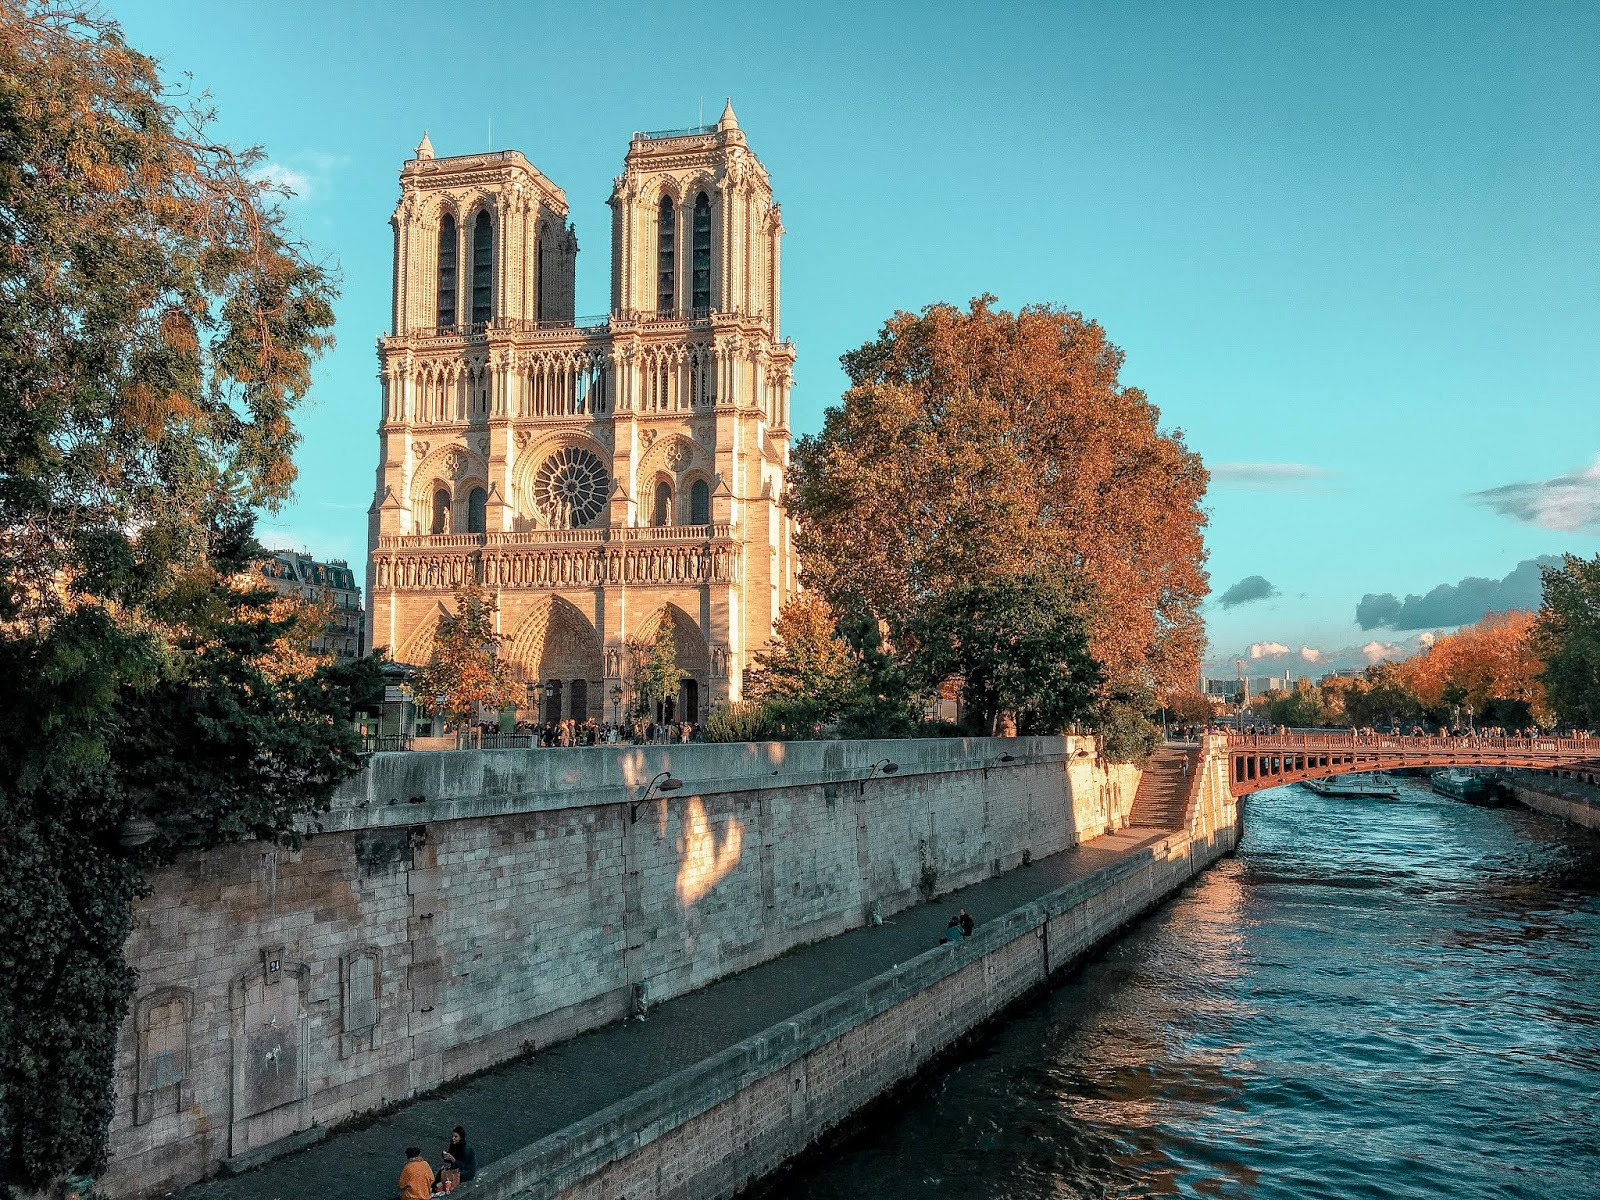 My Travel Background : au revoir Paris - Notre-Dame